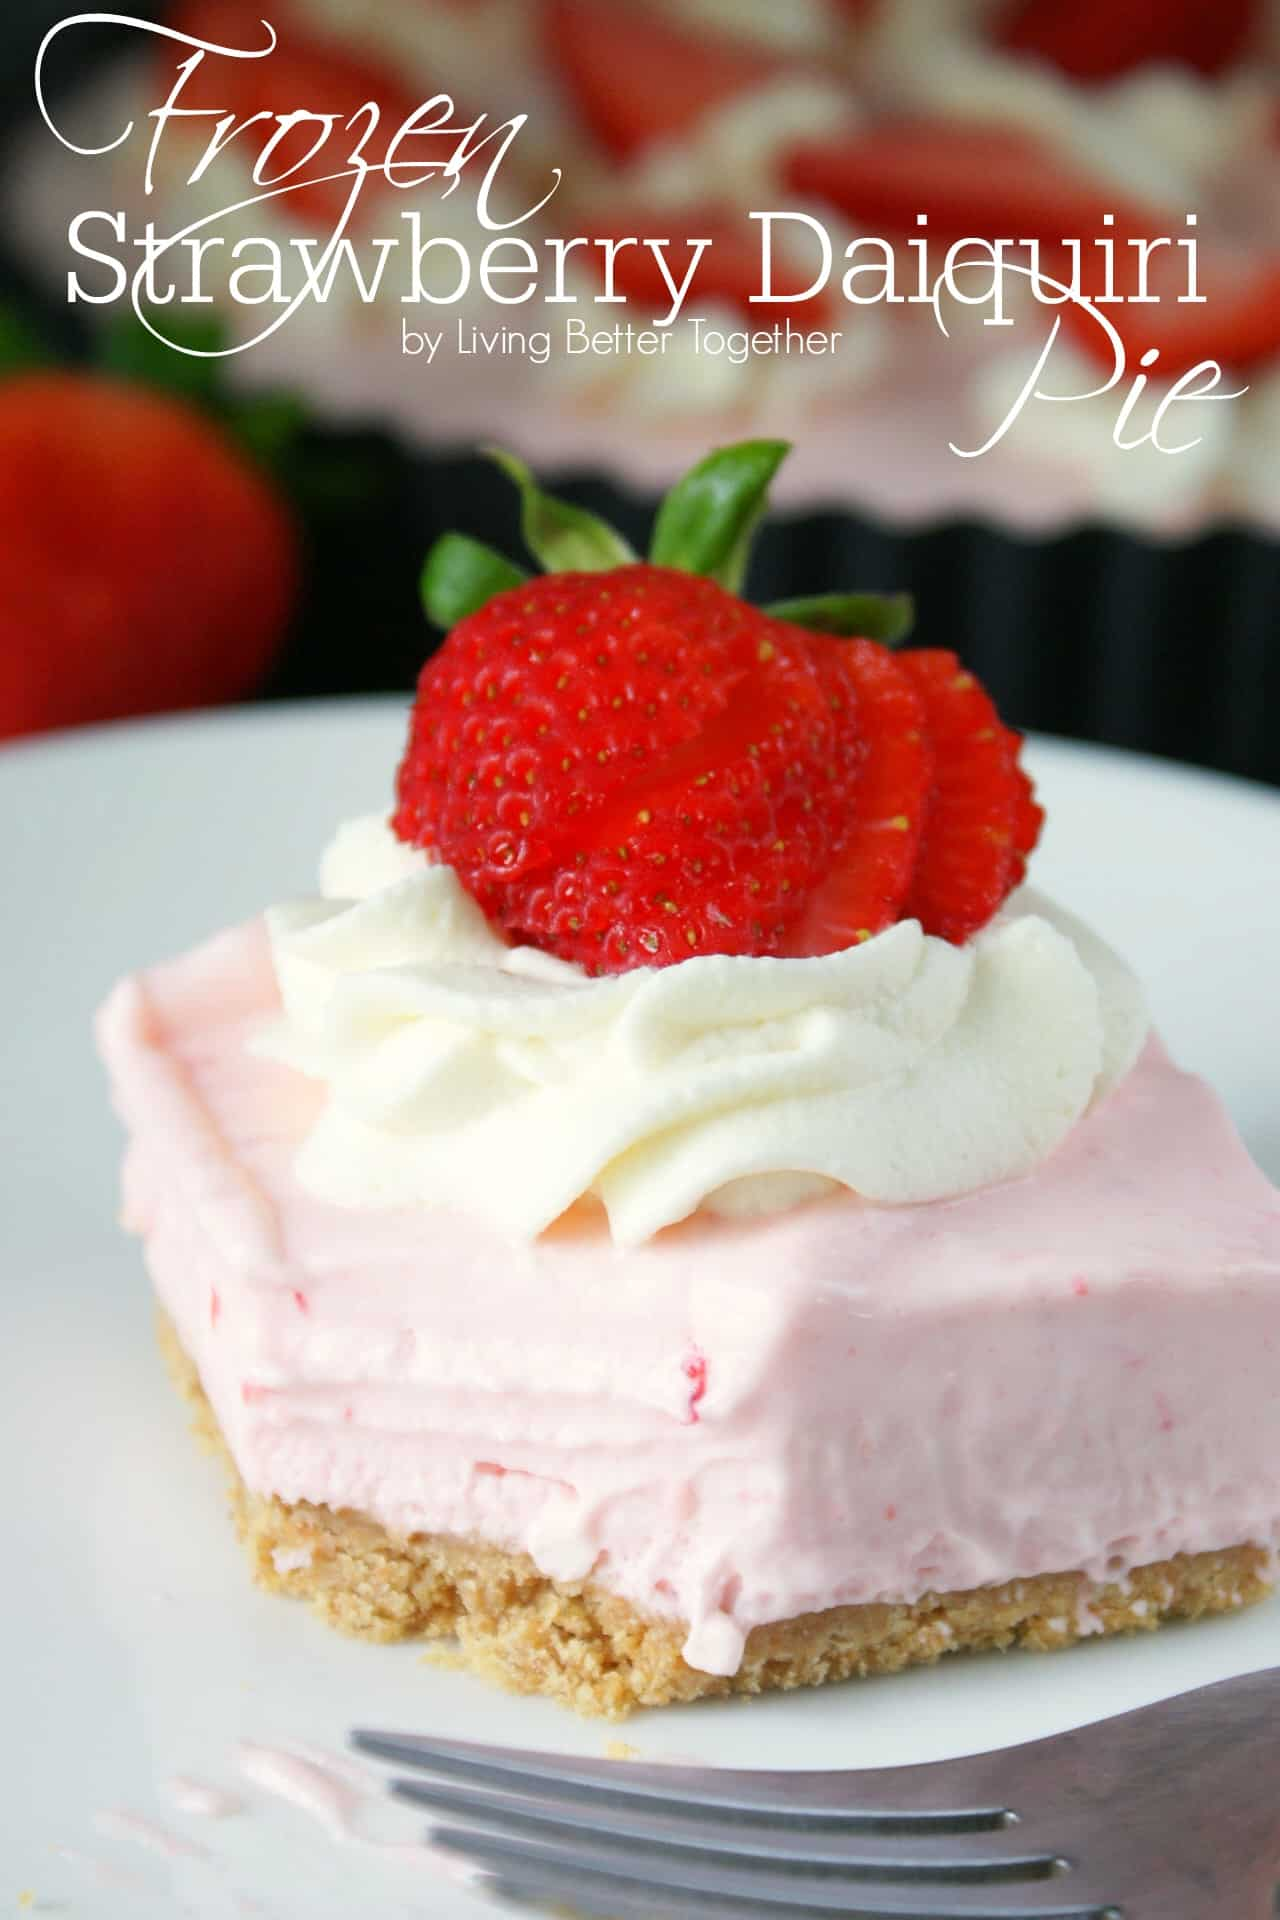 Frozen Strawberry Daiquiri Pie